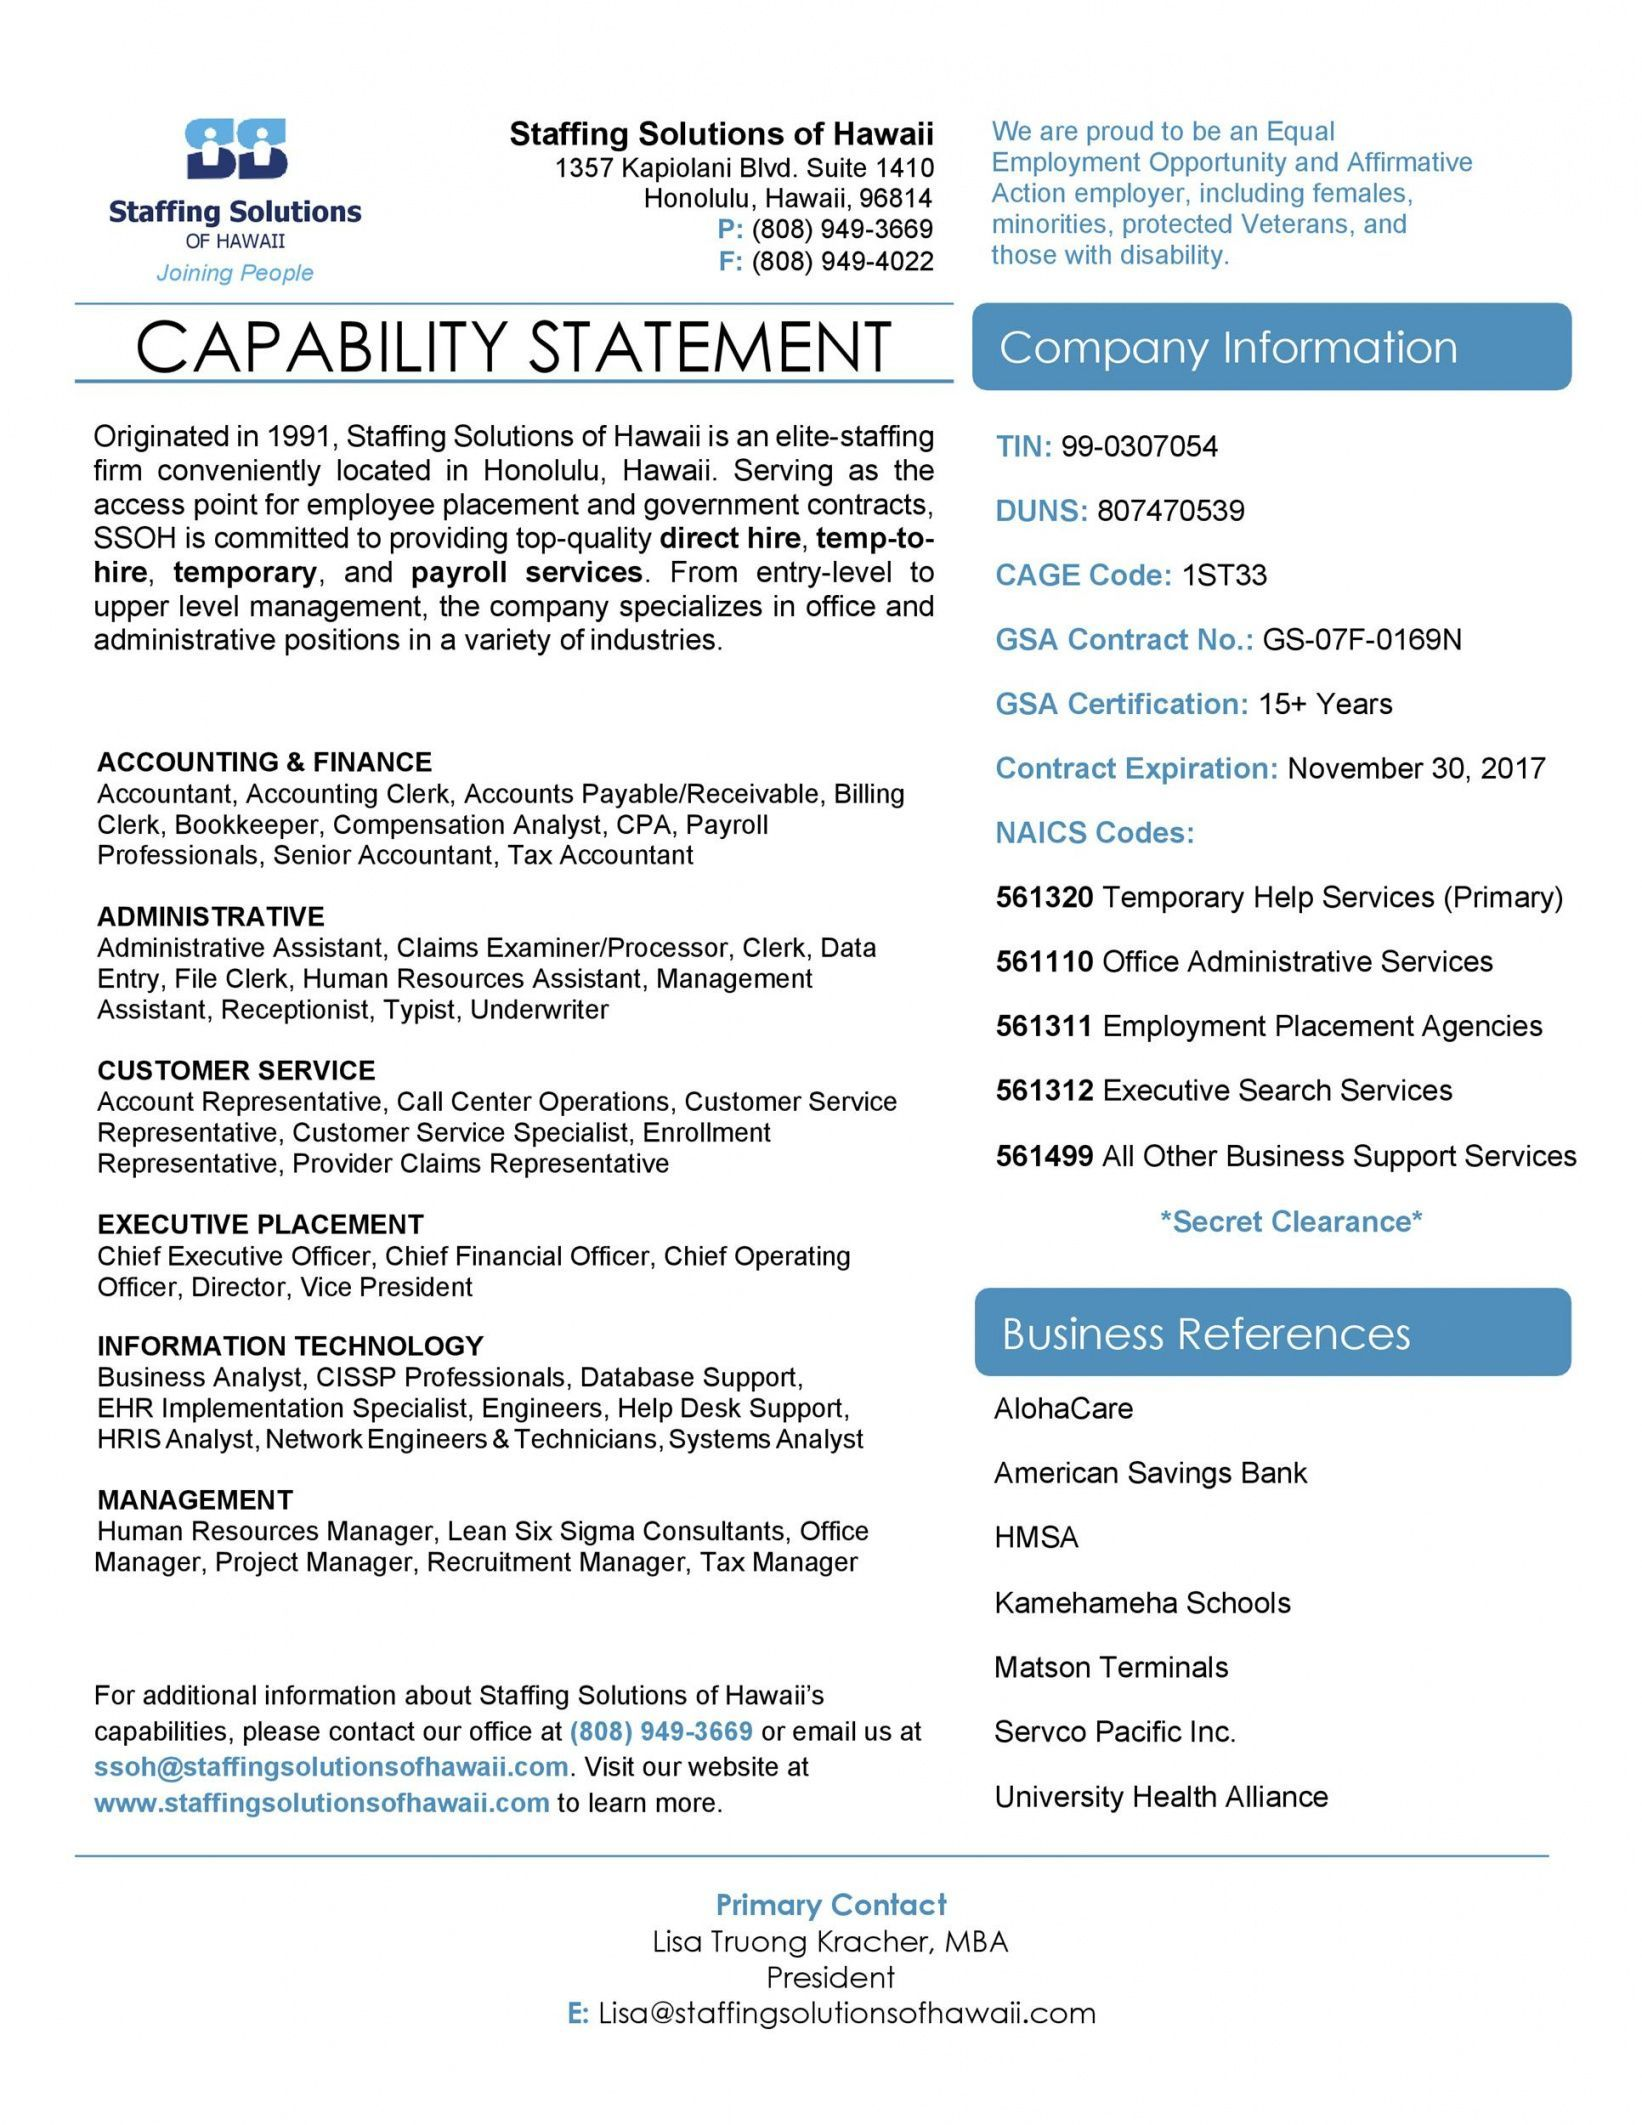 Get our sample of capability statement template